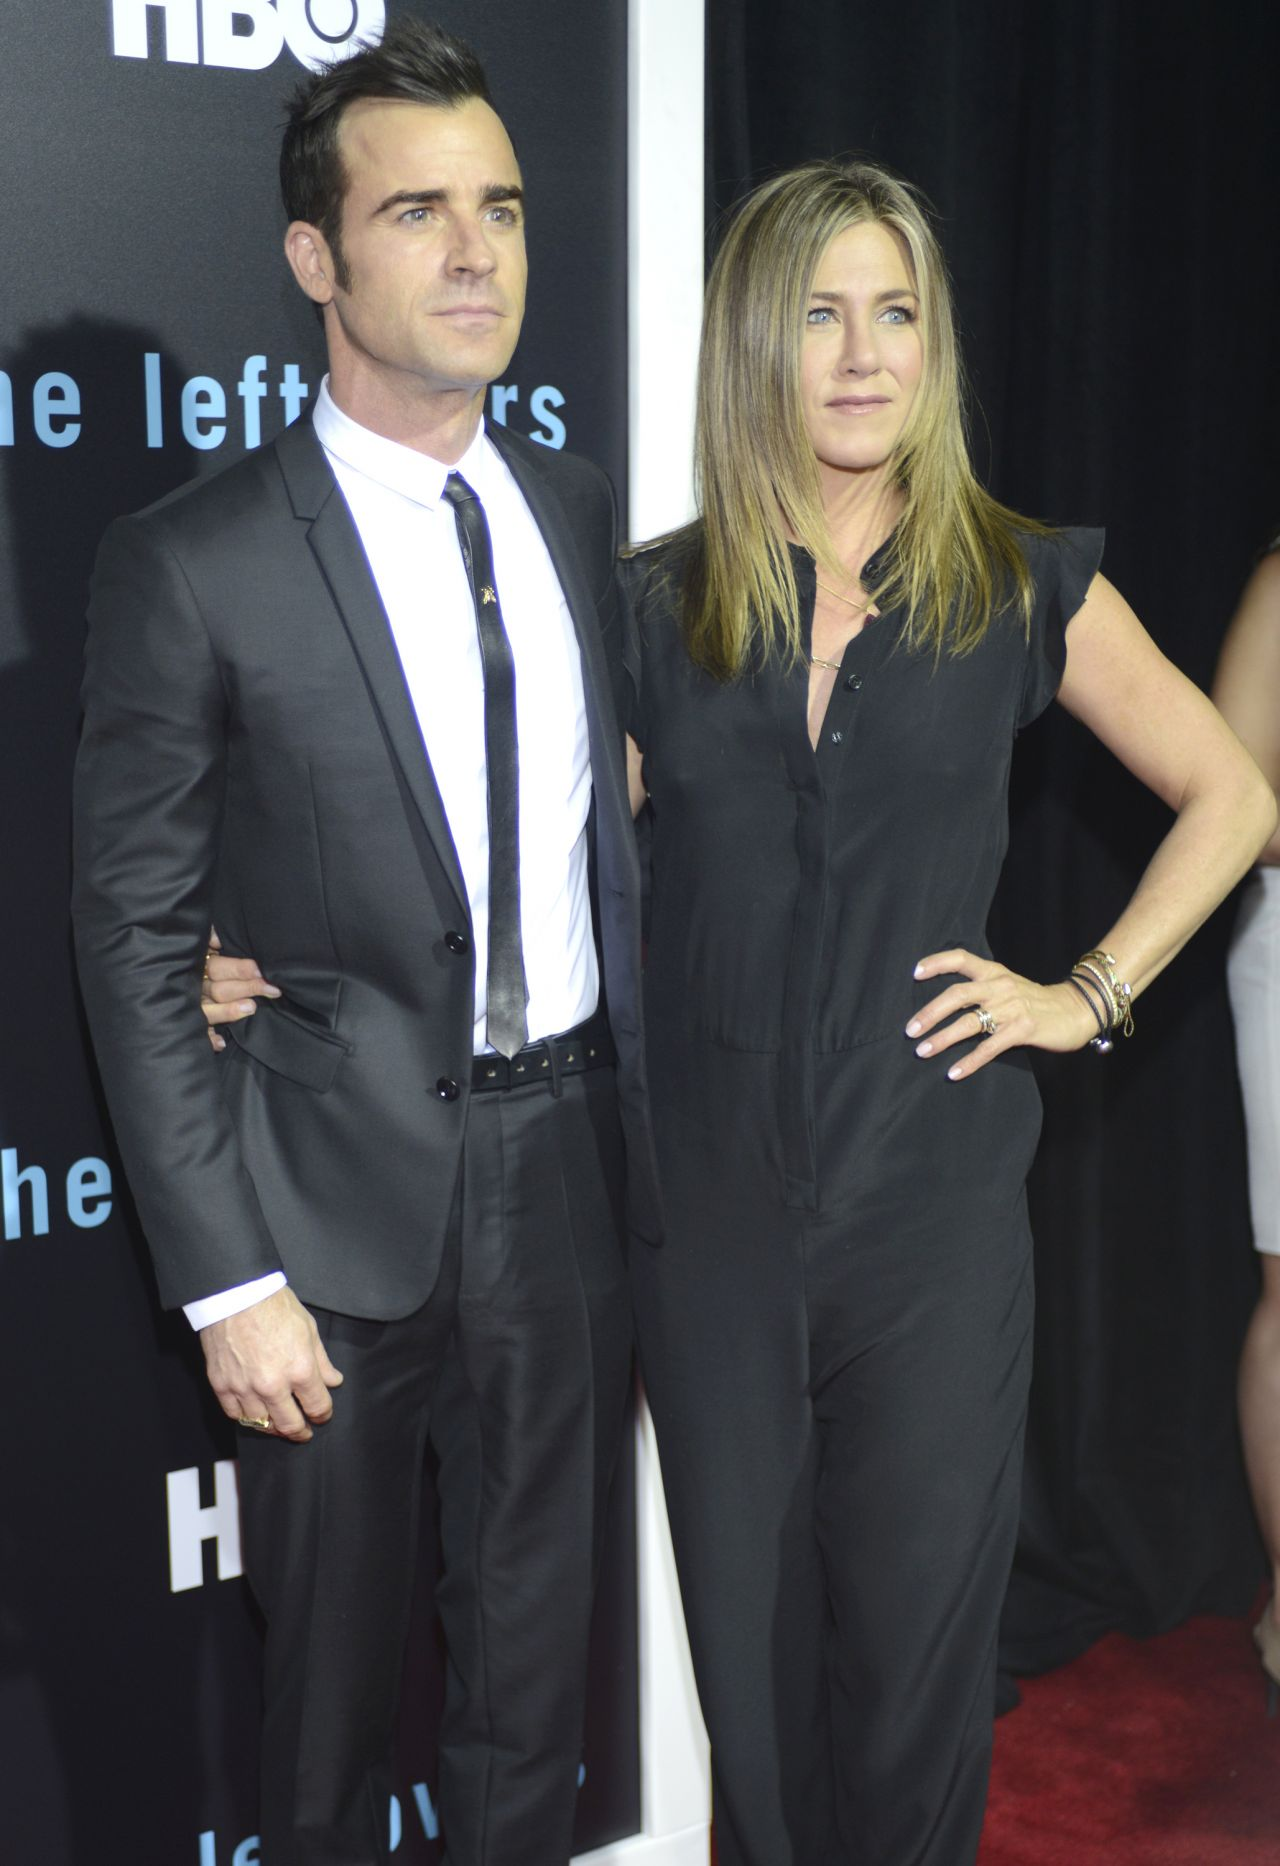 jennifer-aniston-hbo-s-the-leftovers-season-2-premiere-atx-television-festival-in-austin_9